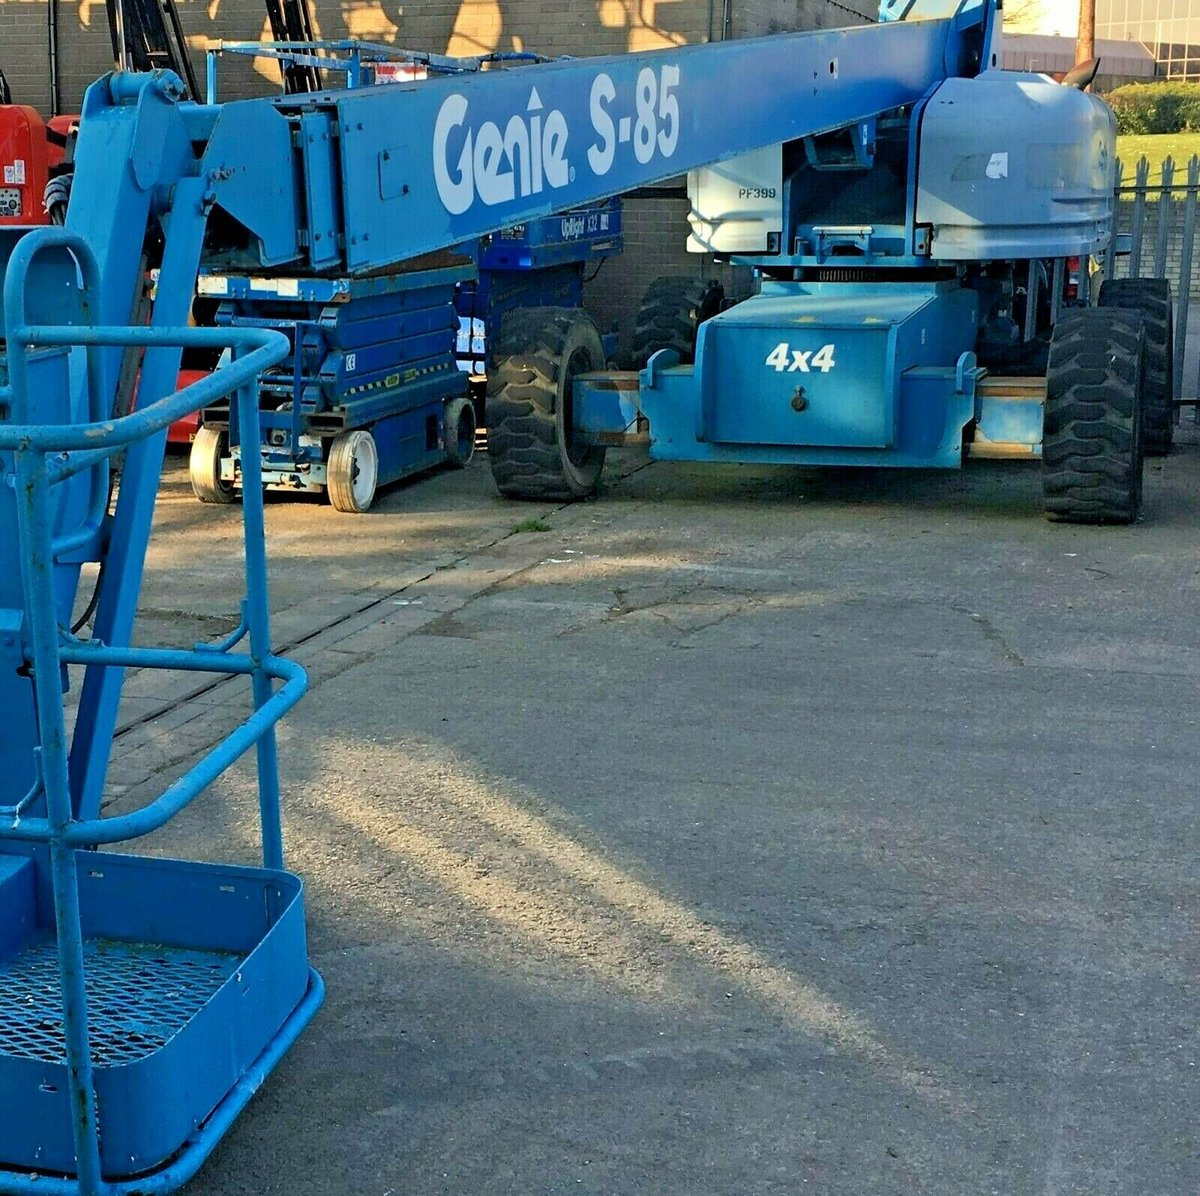 An image of Genie S85 straight diesel boom lift access platform cherry picker goes here.